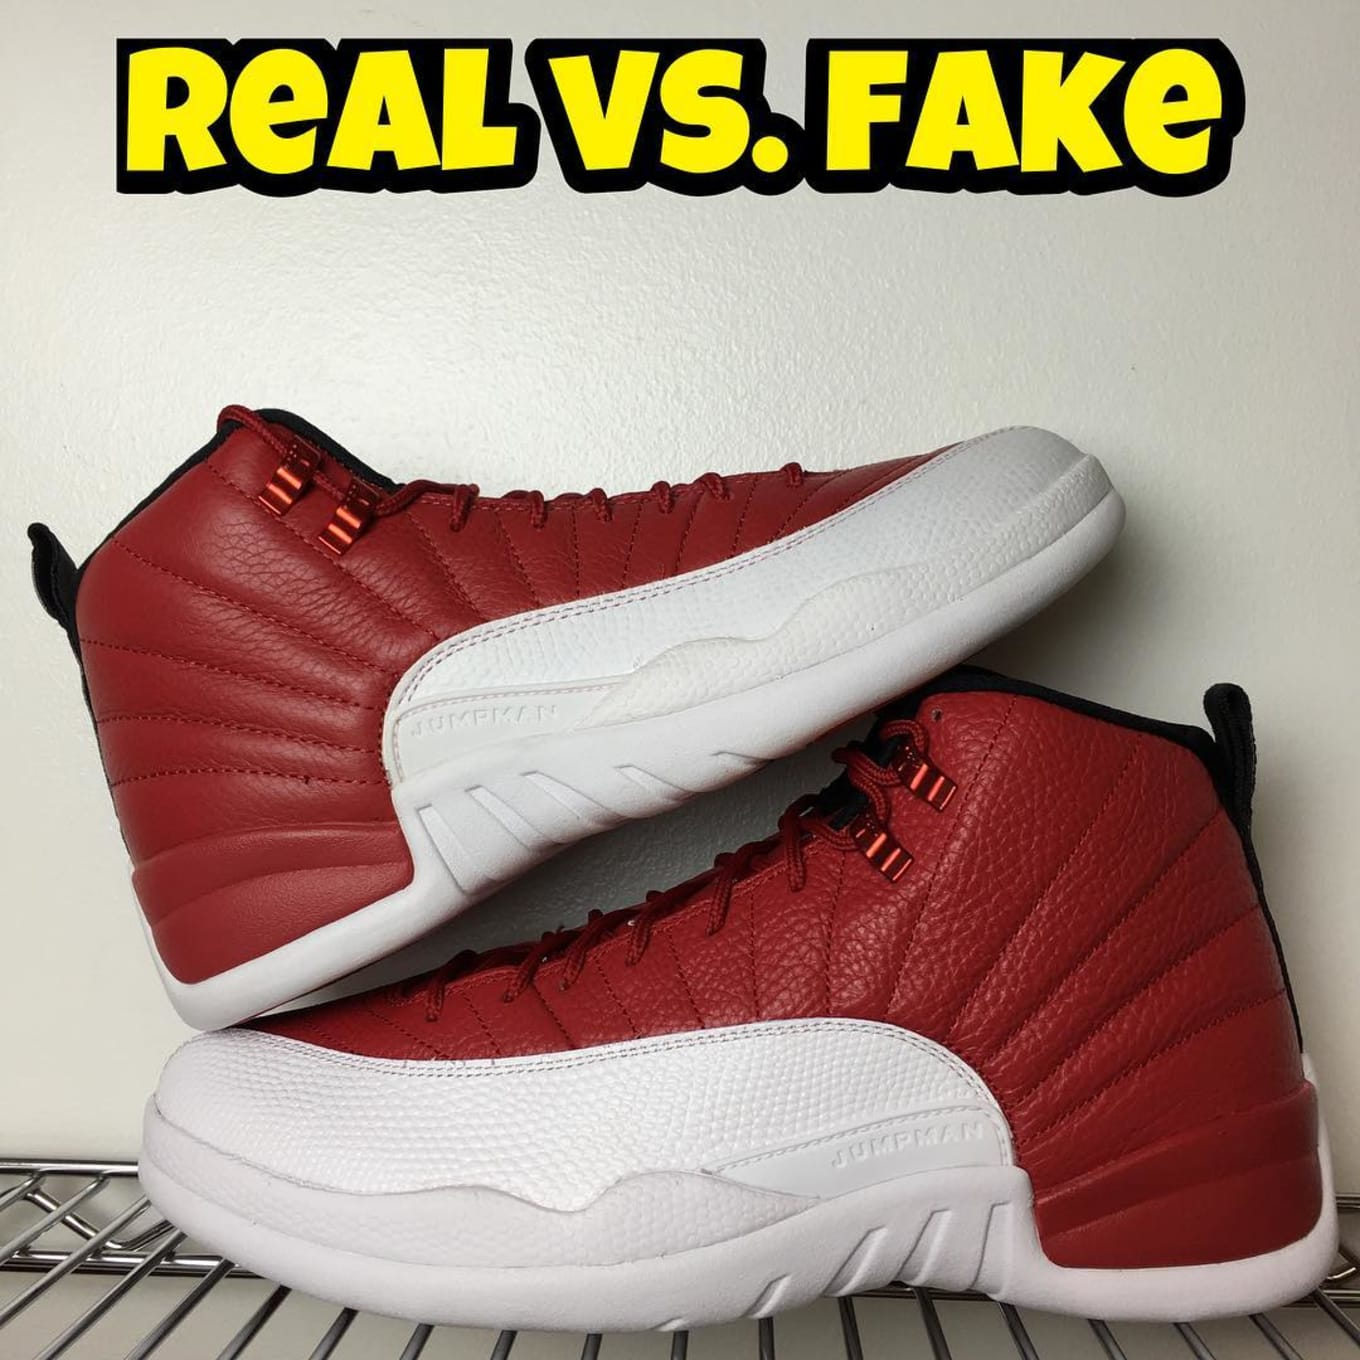 Air Jordan XII 12 Gym Red Real Fake Legit Check  d7e2ed065